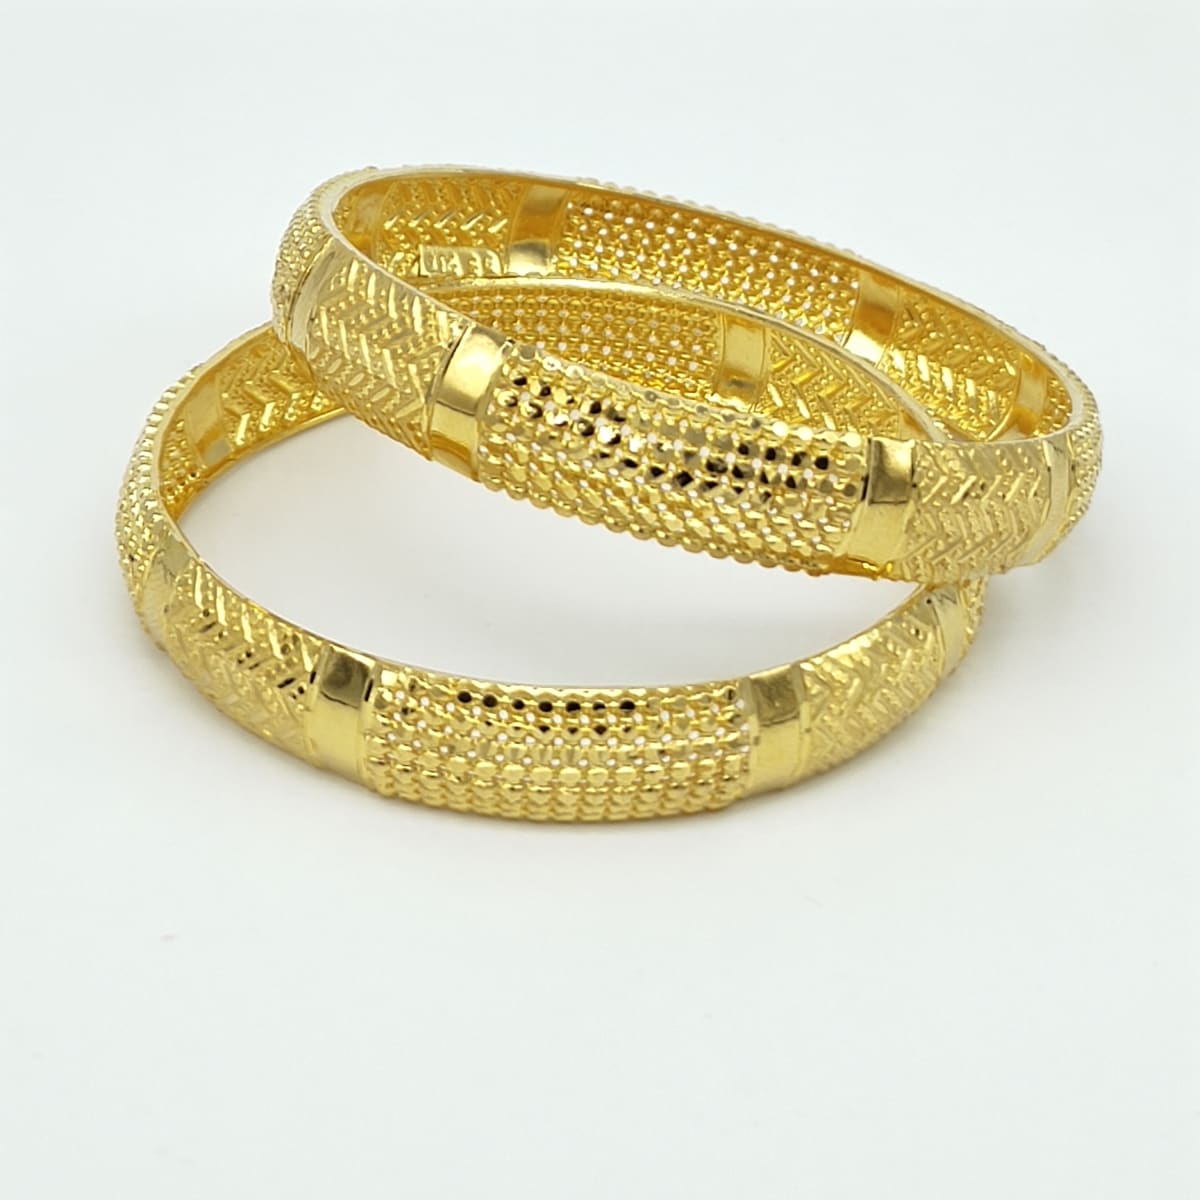 Gold Bangles  Top Design For Ladies - 2pcs